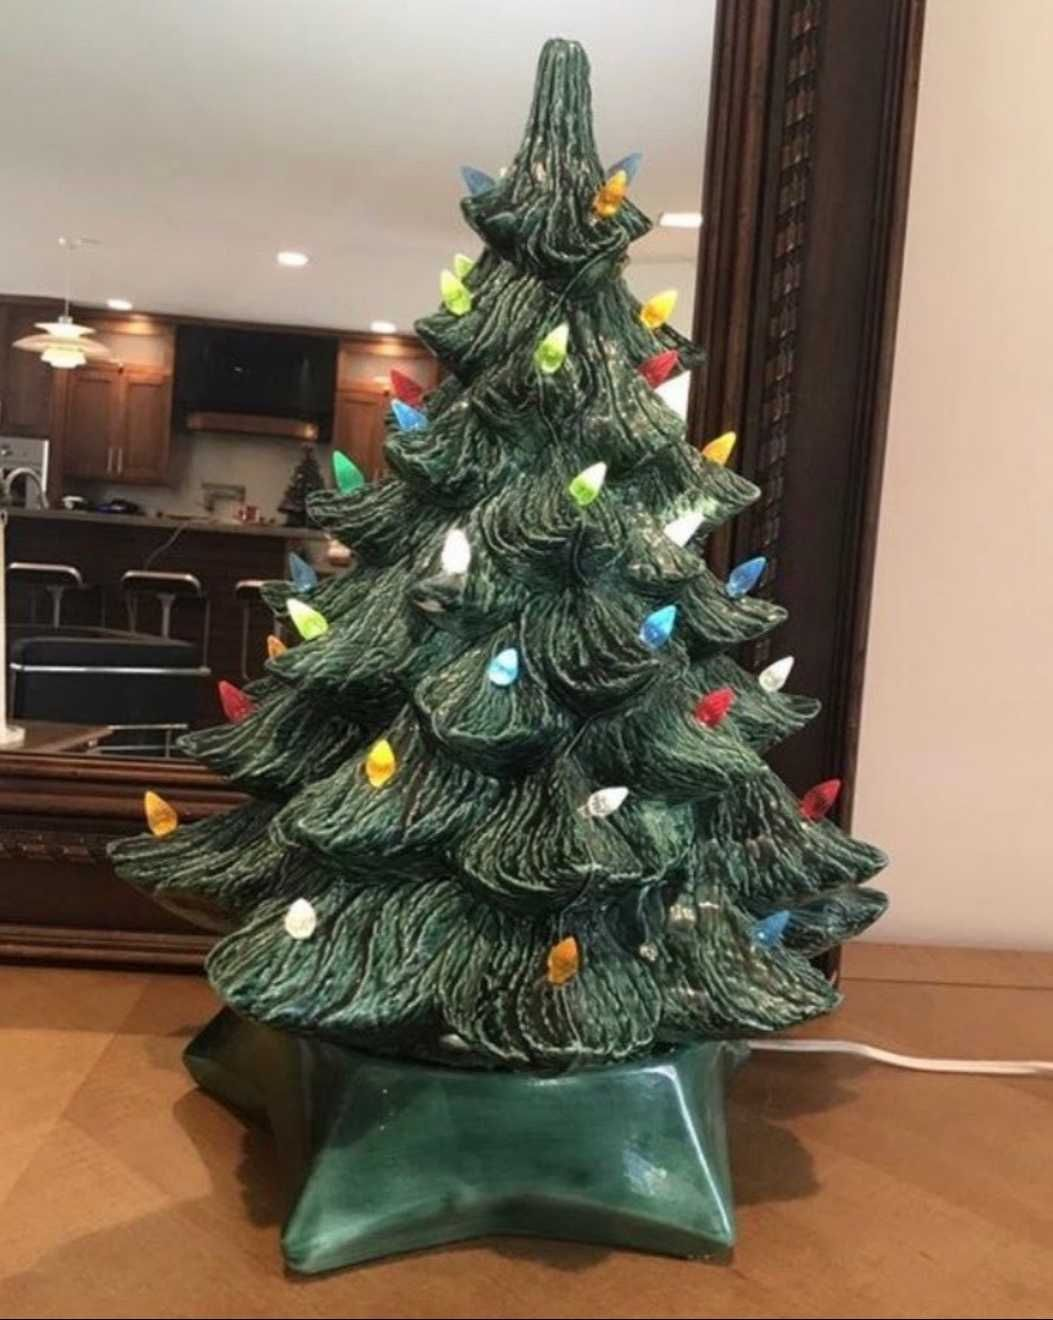 Ceramic Trees Could Help You Ring In Serious Cash for the Holiday Season